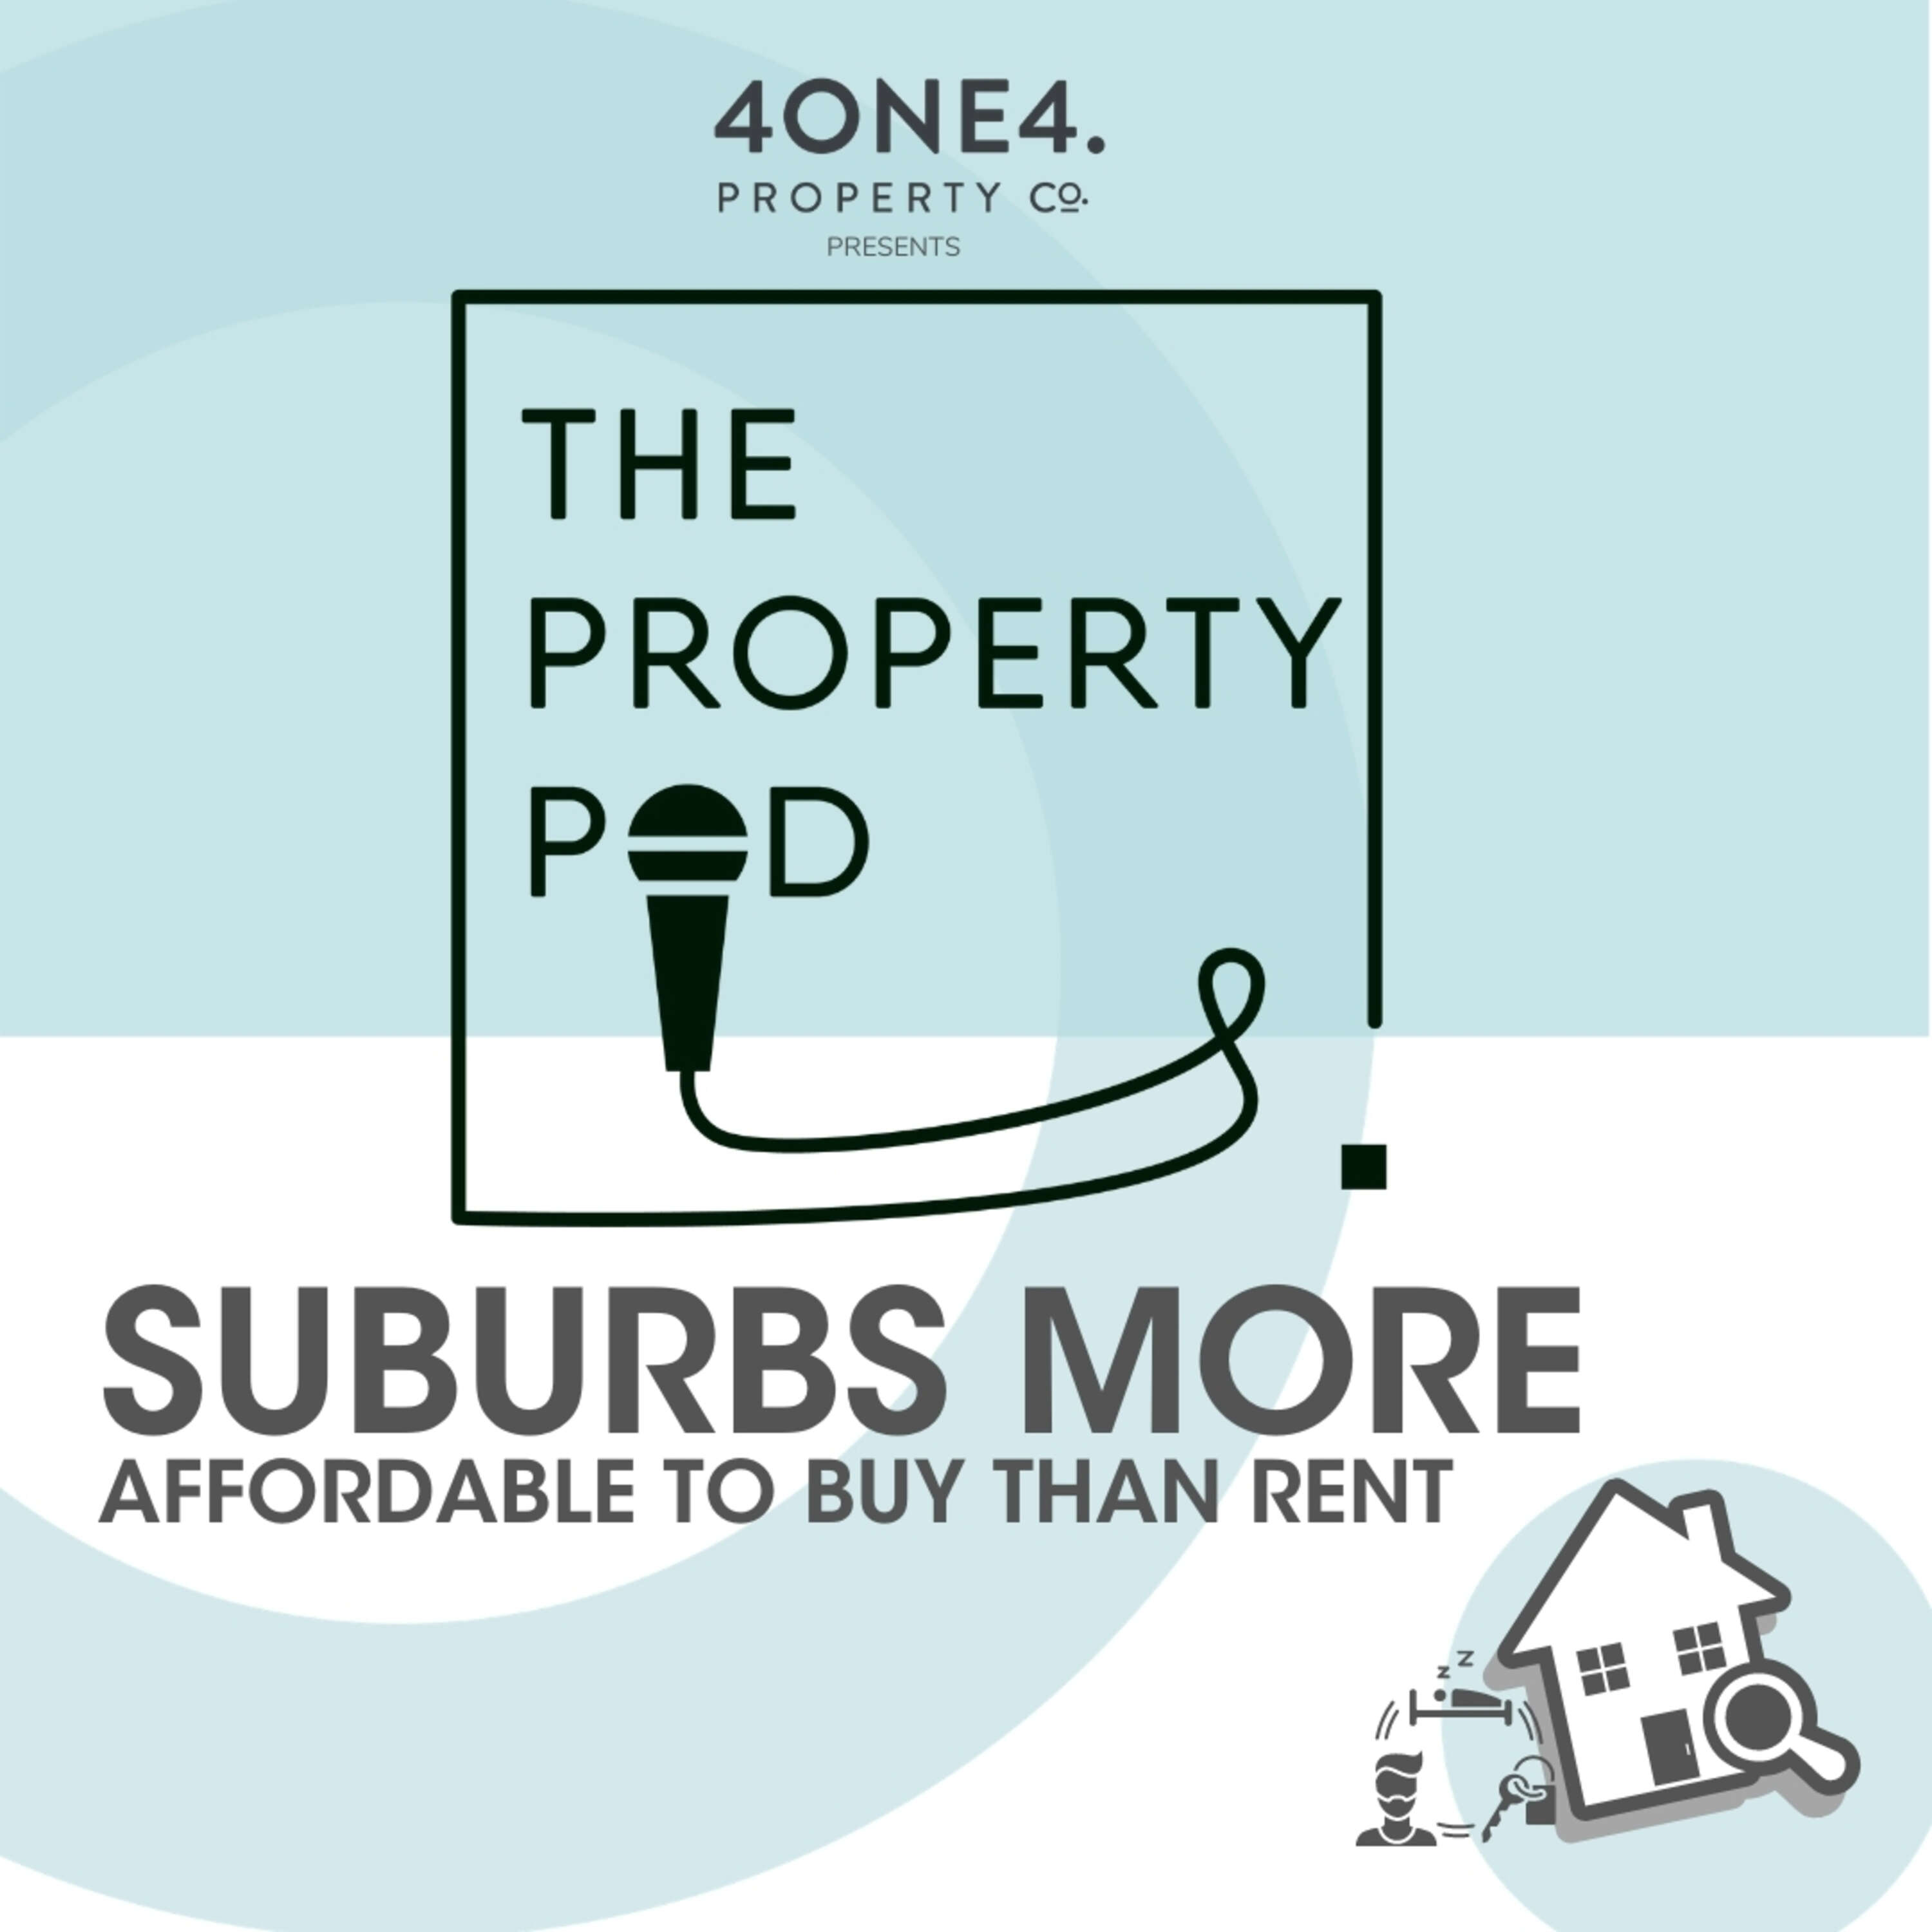 Suburbs that are More Affordable to Buy In than Rent